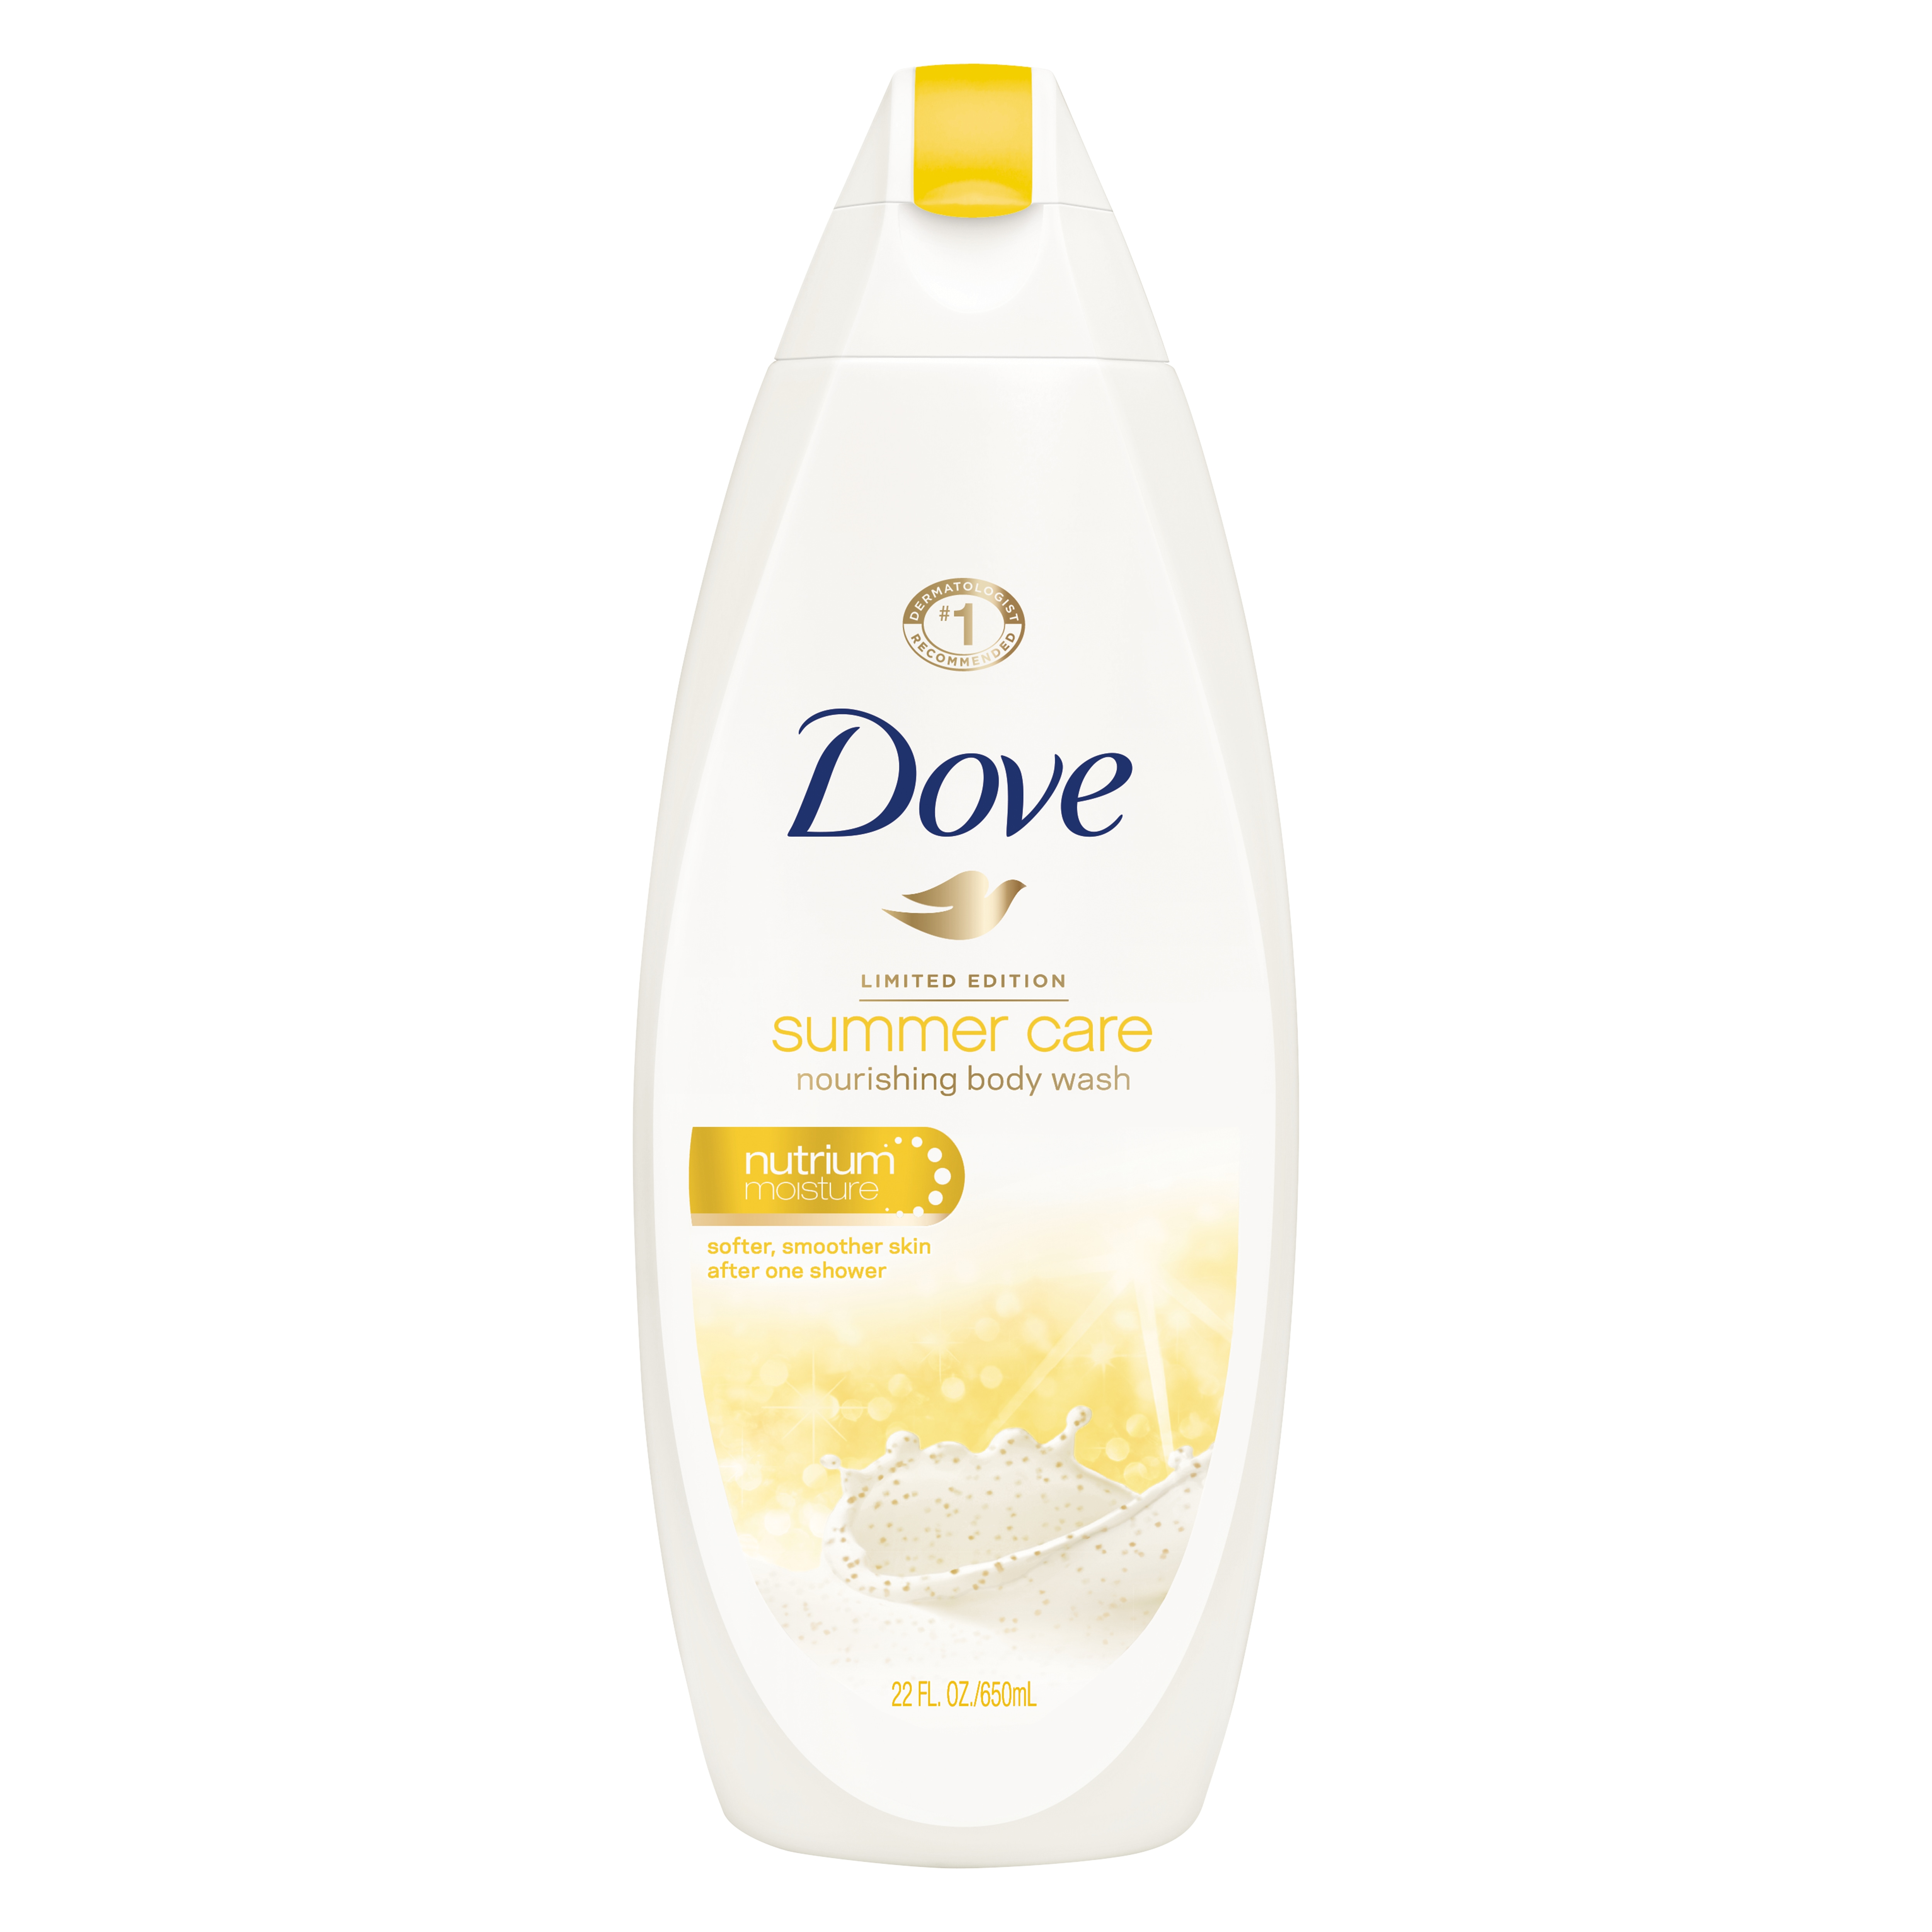 Dove Summer Care Body Wash